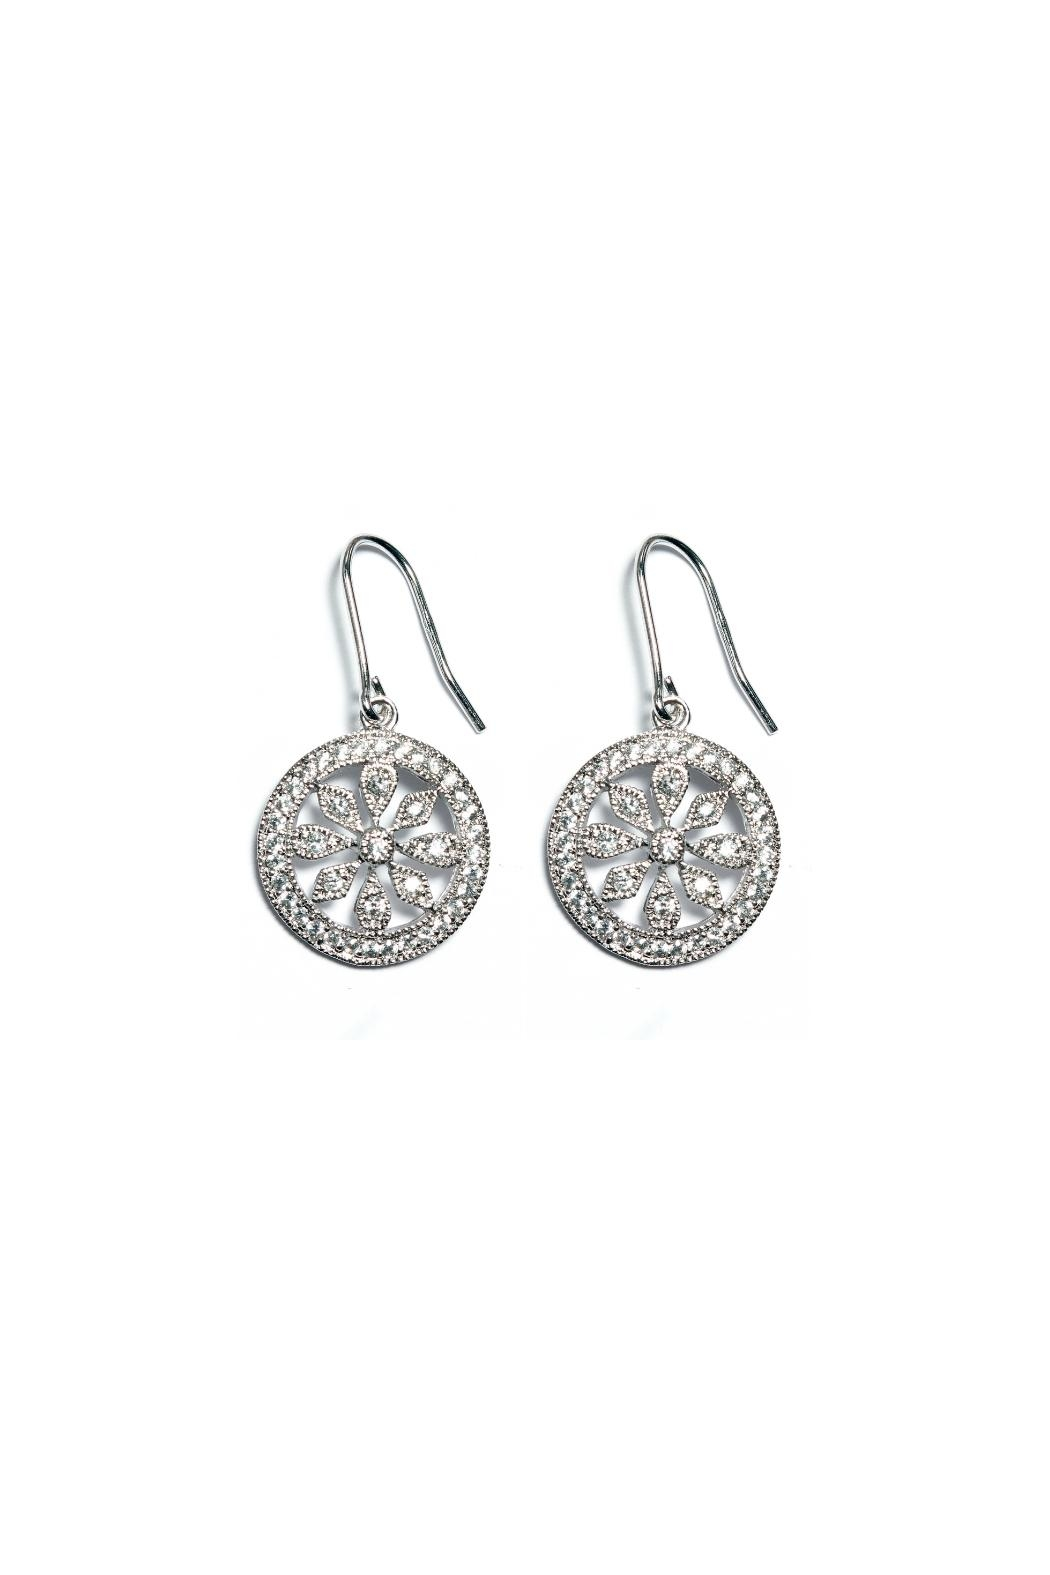 Gemma Collection Silver Pave Earrings - Main Image